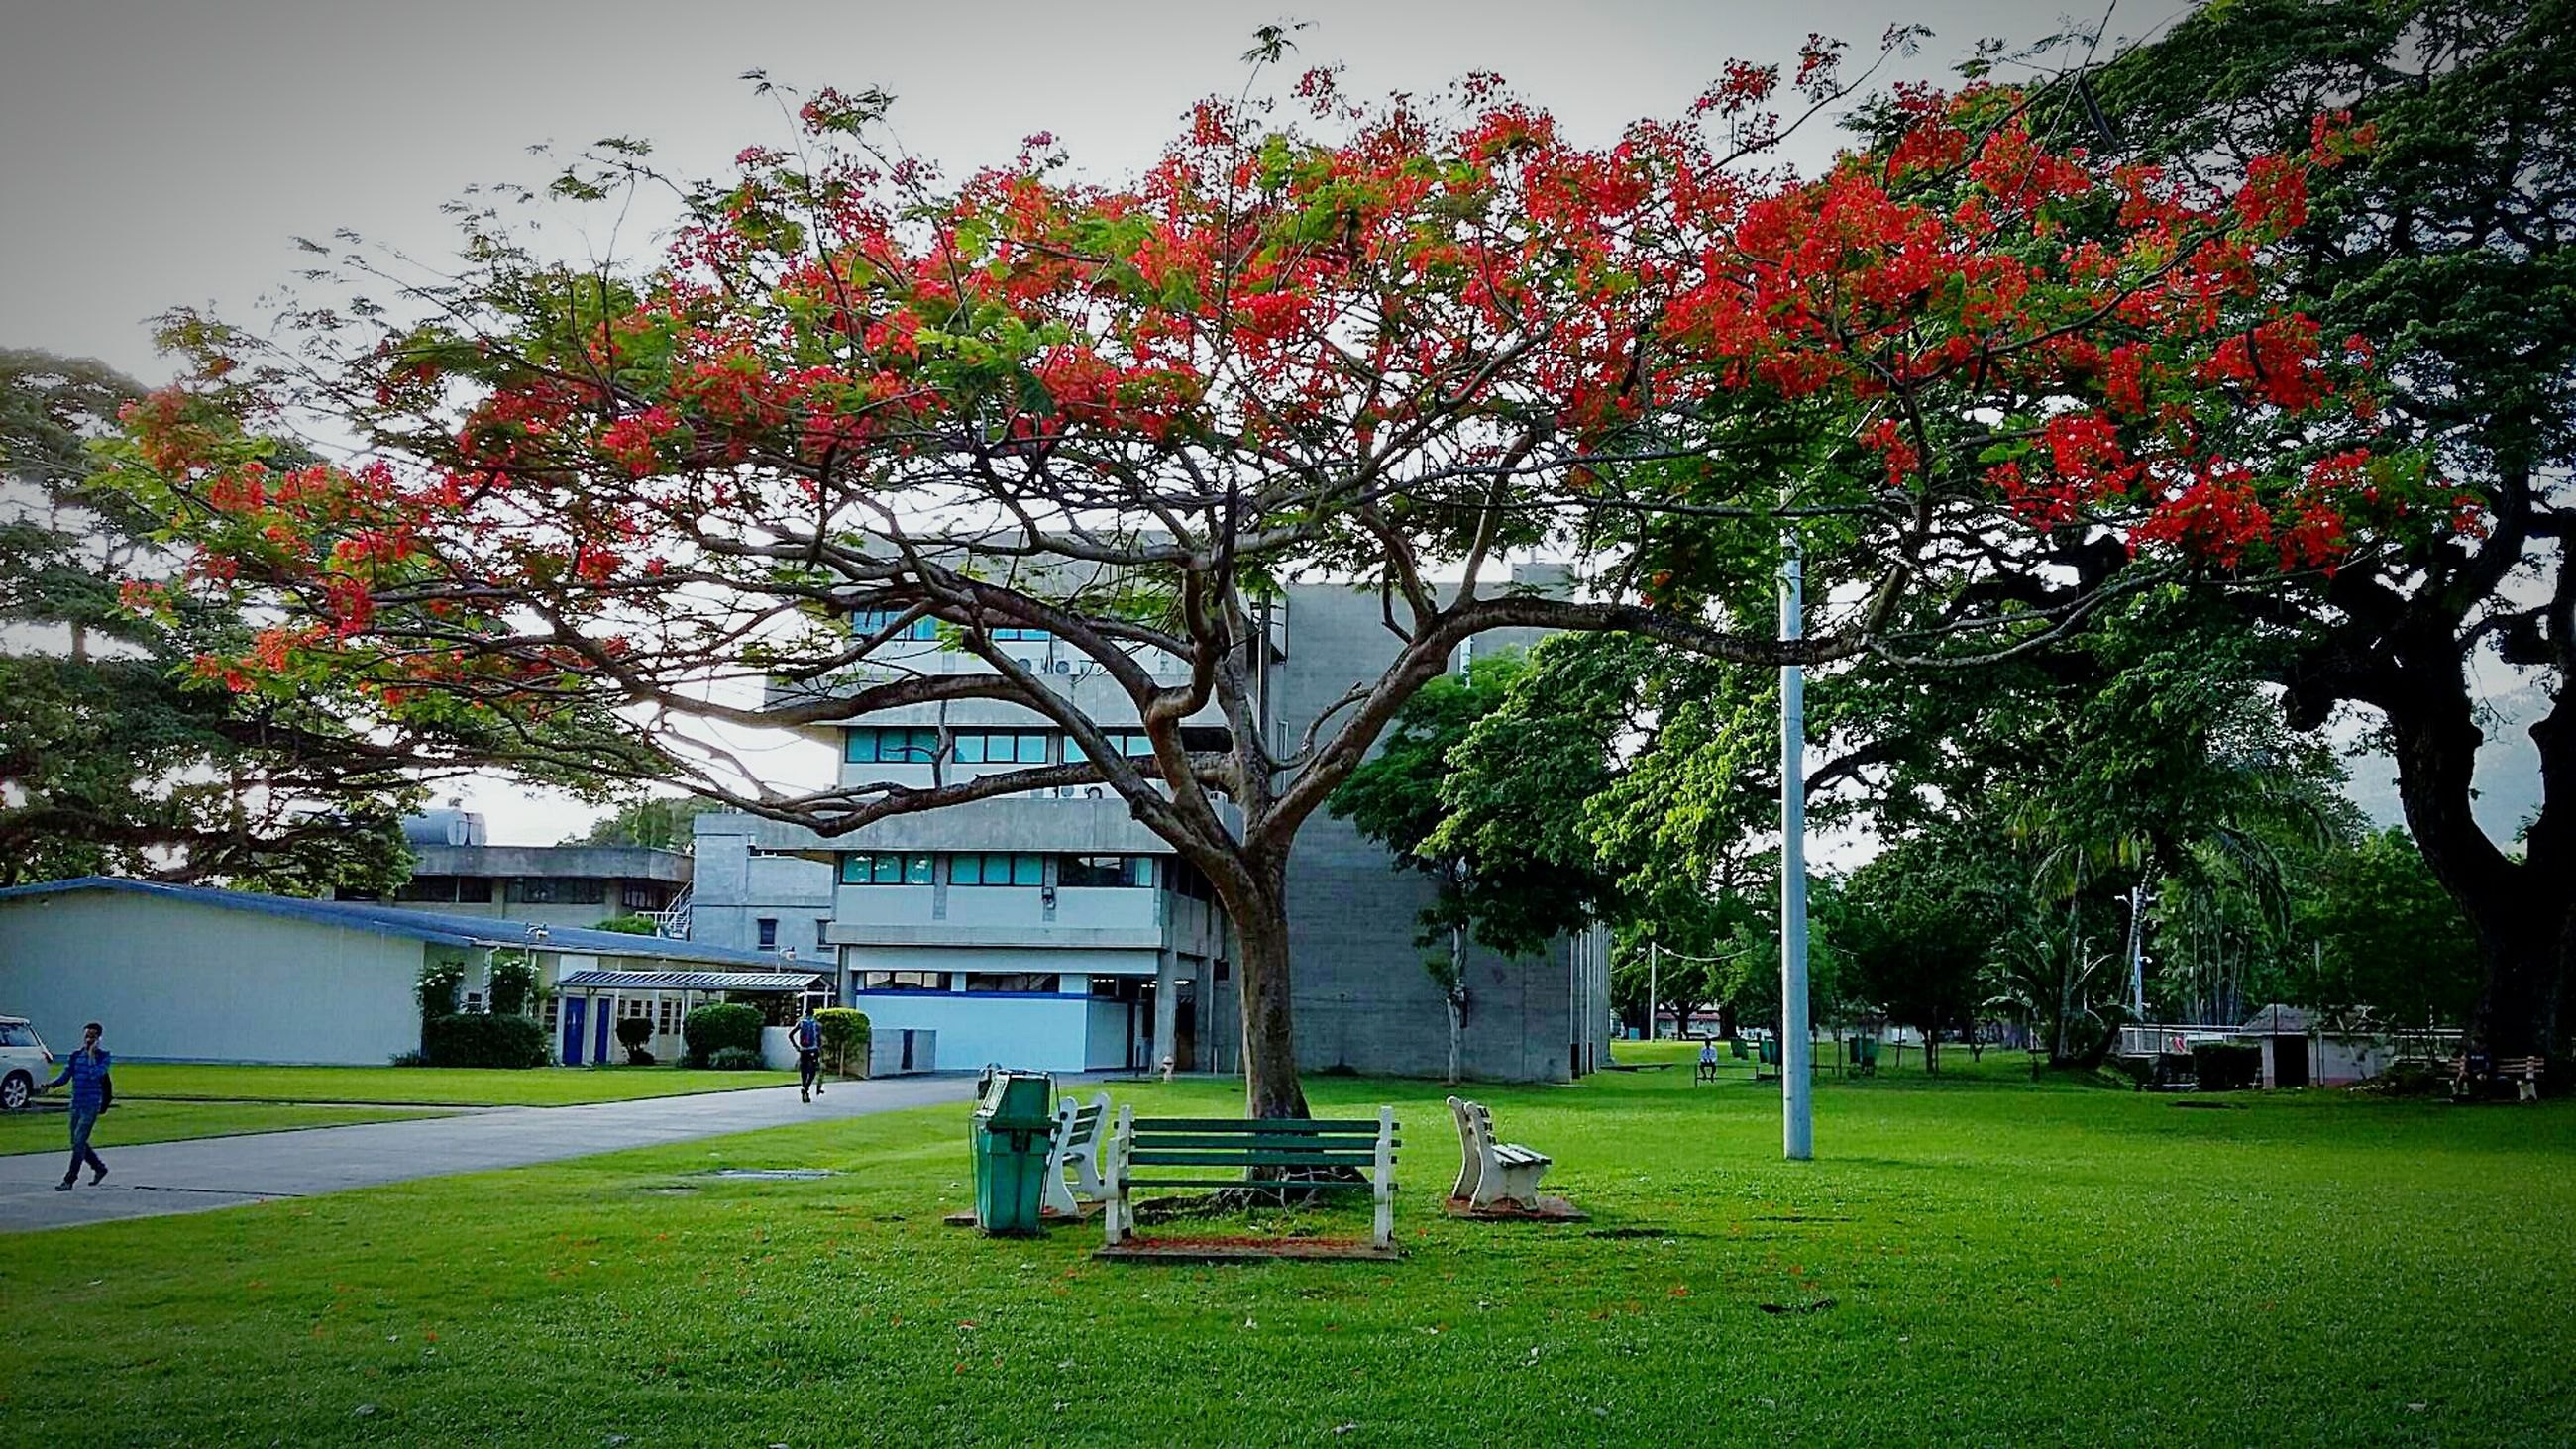 tree, grass, lawn, built structure, park - man made space, green color, growth, park, nature, flower, sky, day, outdoors, beauty in nature, grassy, yard, city, tranquility, travel destinations, tree trunk, plant, blossom